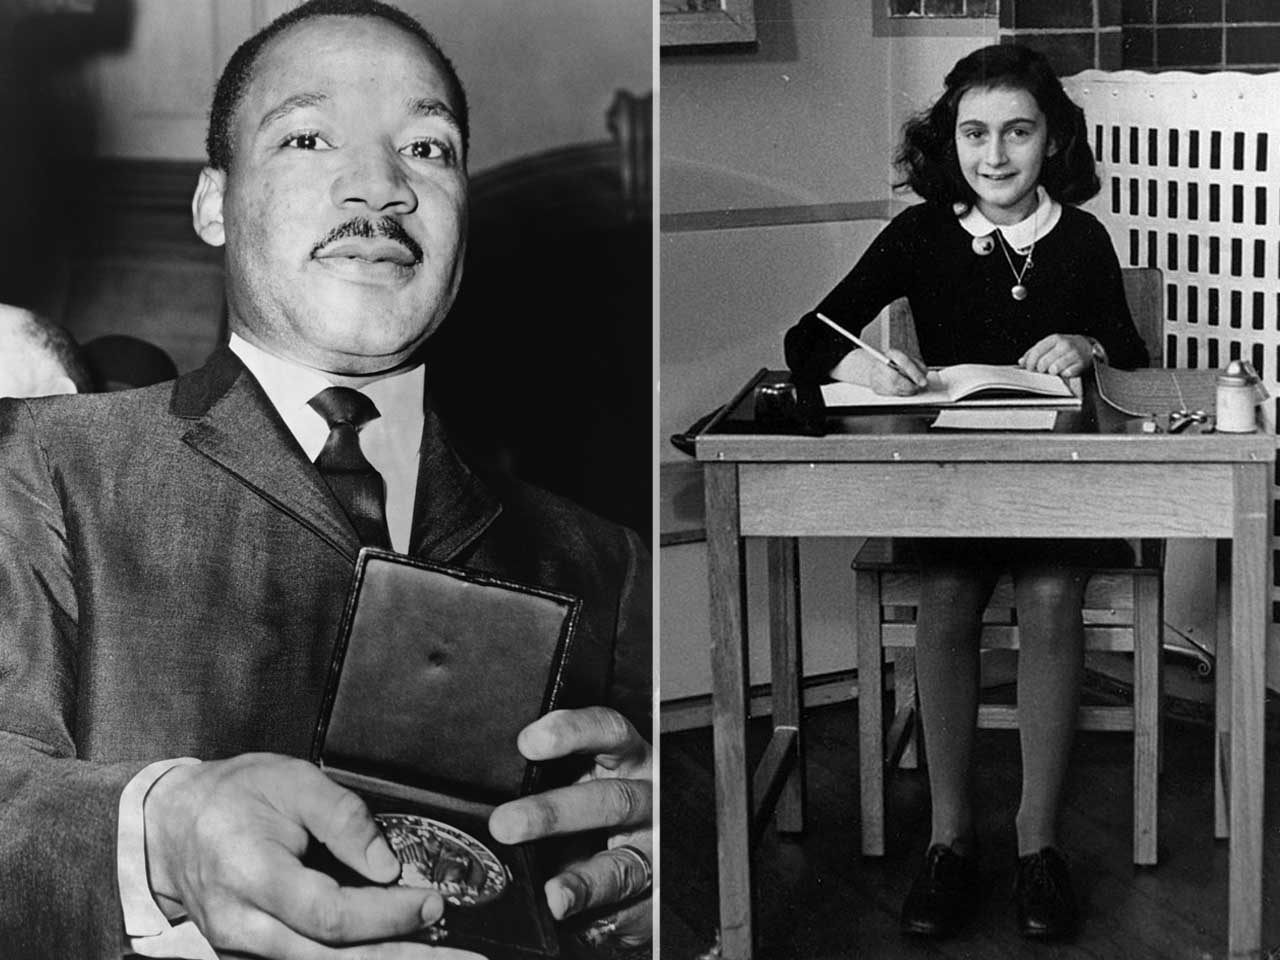 Anne Frank and Martin Luther King, Jr. were both born in the same year, 1929.